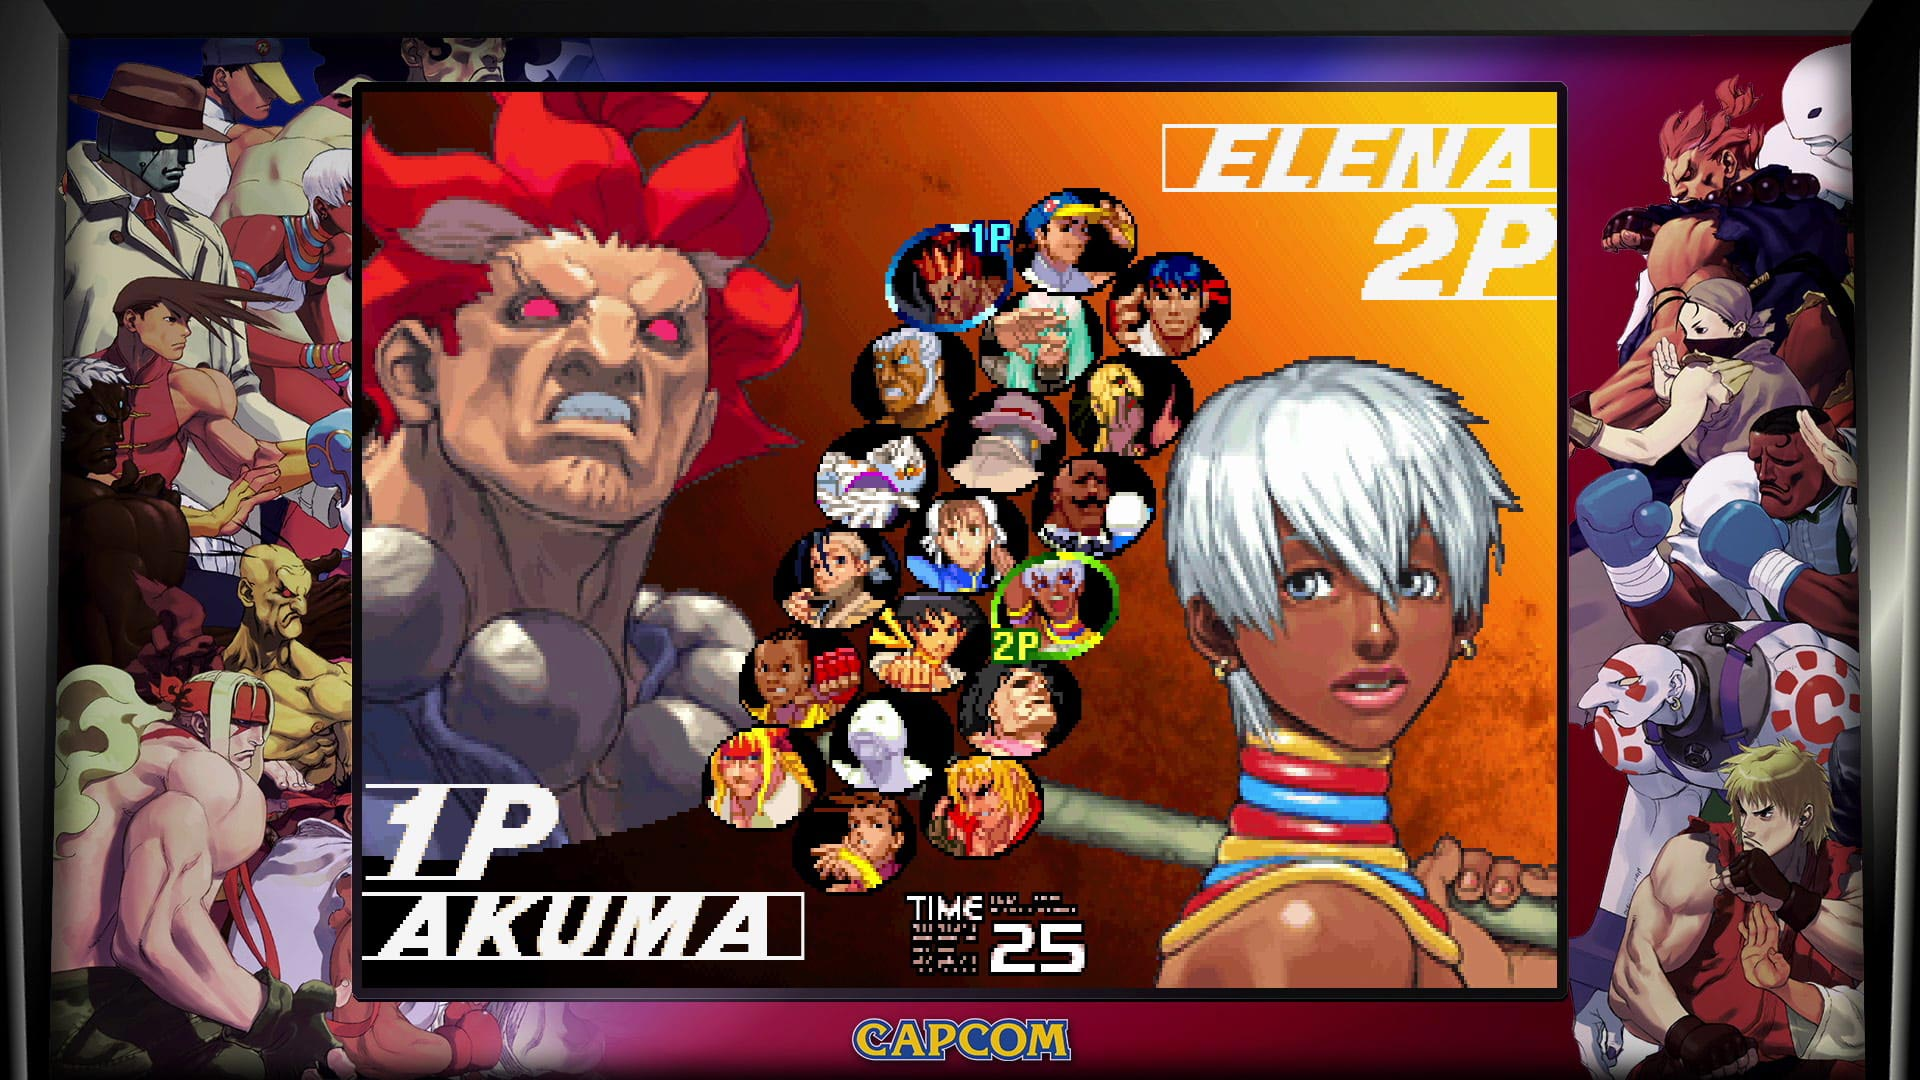 Street Fighter 30th Anniversary Collection images 12 out of 17 image gallery